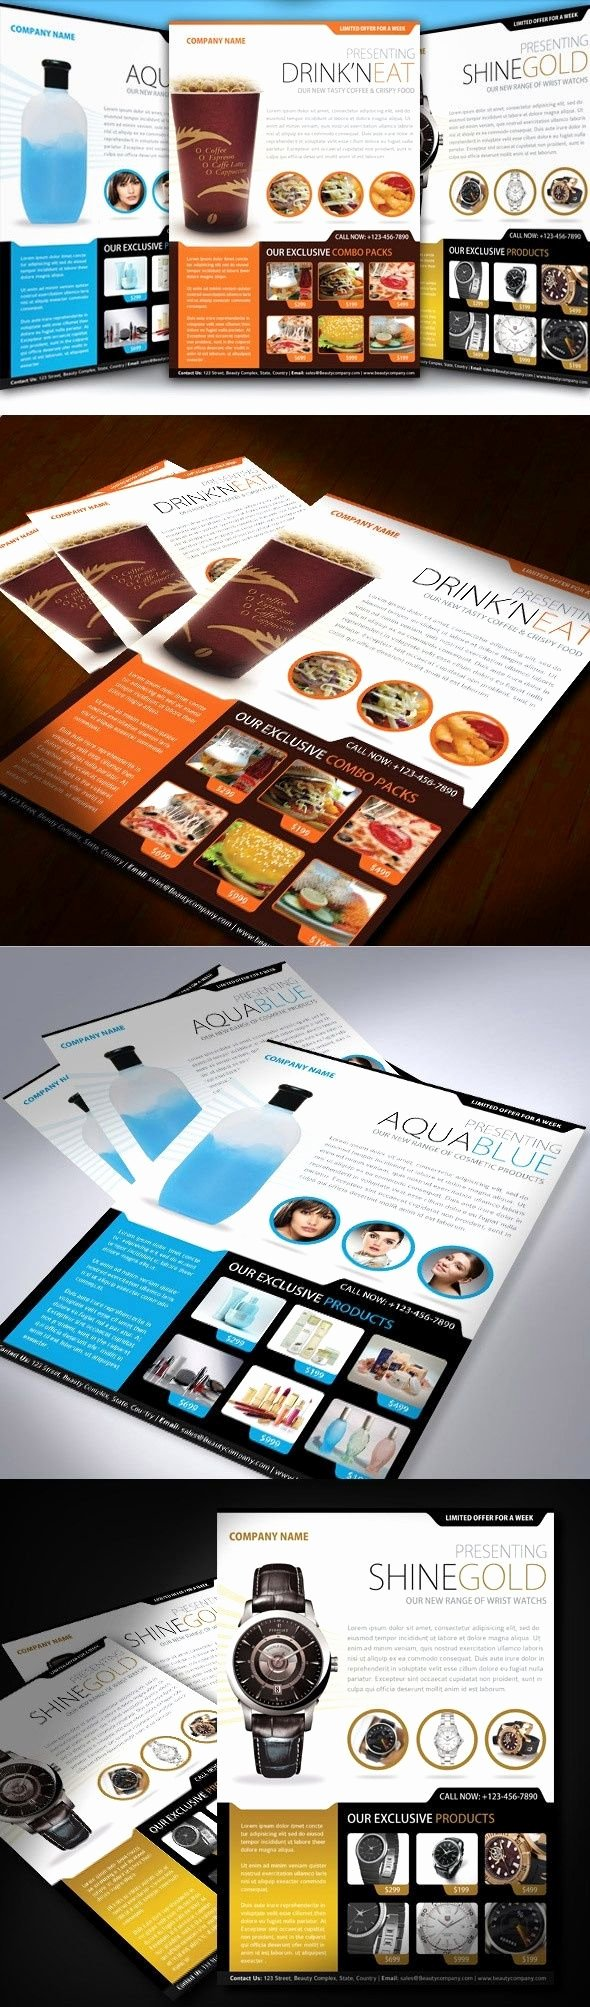 Product Sell Sheet Template Awesome 52 Best Design Sell Sheets Images On Pinterest